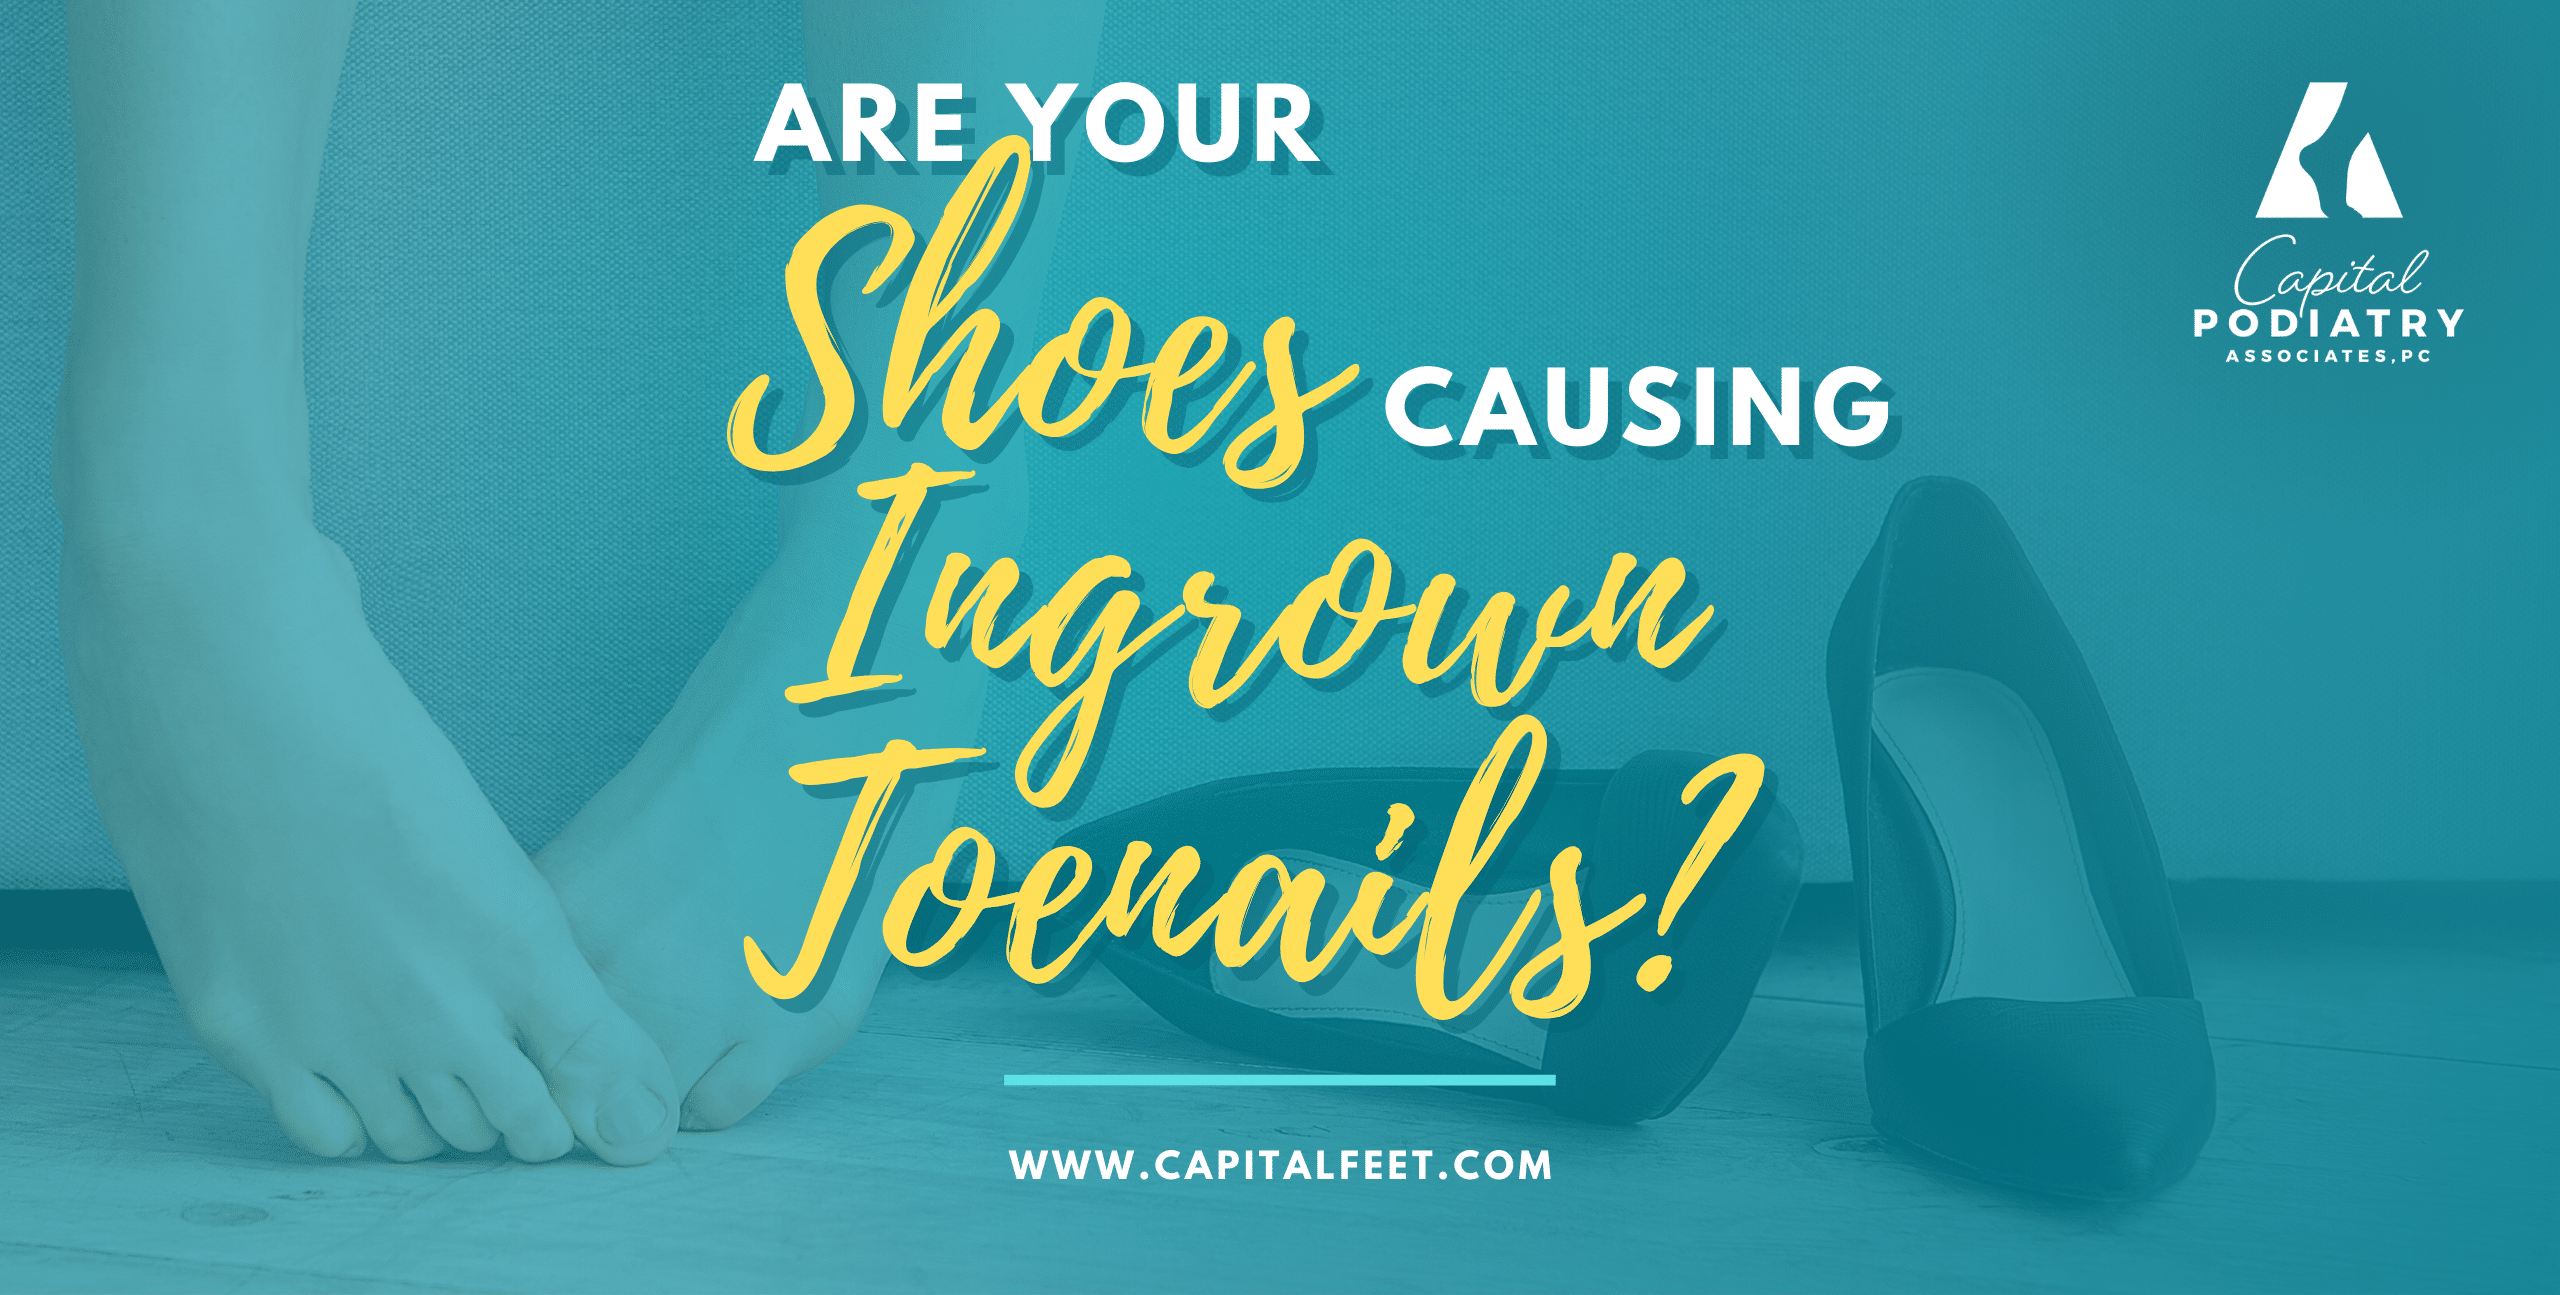 Are your shoes causing ingrown toenails?